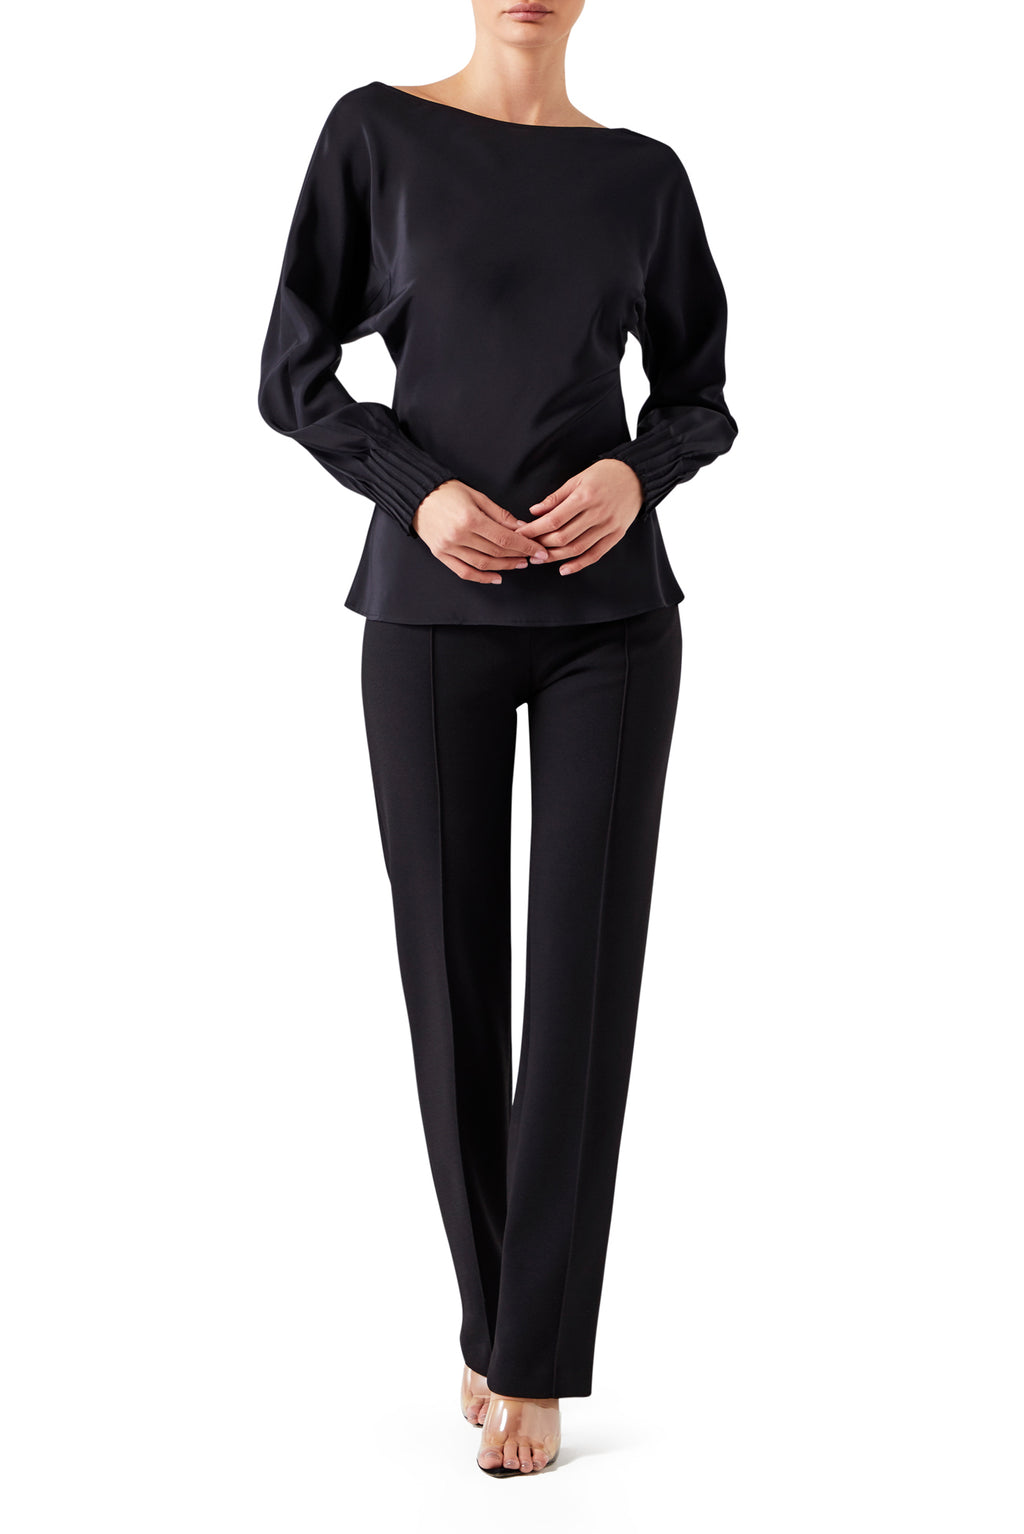 Athenian Long Sleeve Batwing - Black